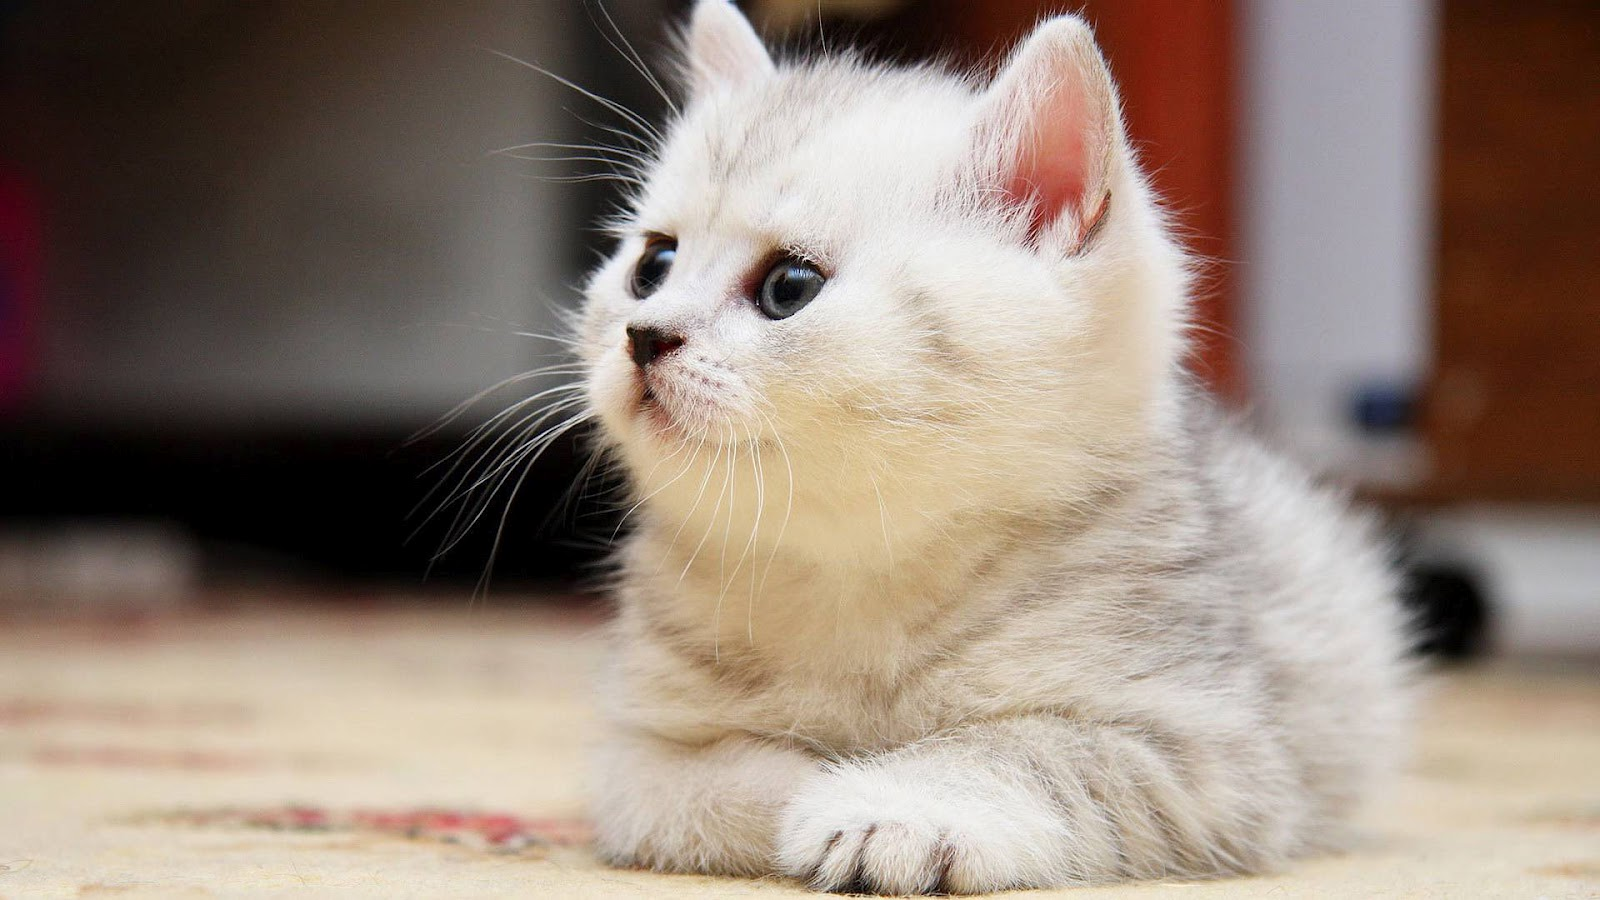 Beautiful Cat Wallpapers HD Pictures One HD Wallpaper Pictures 1600x900